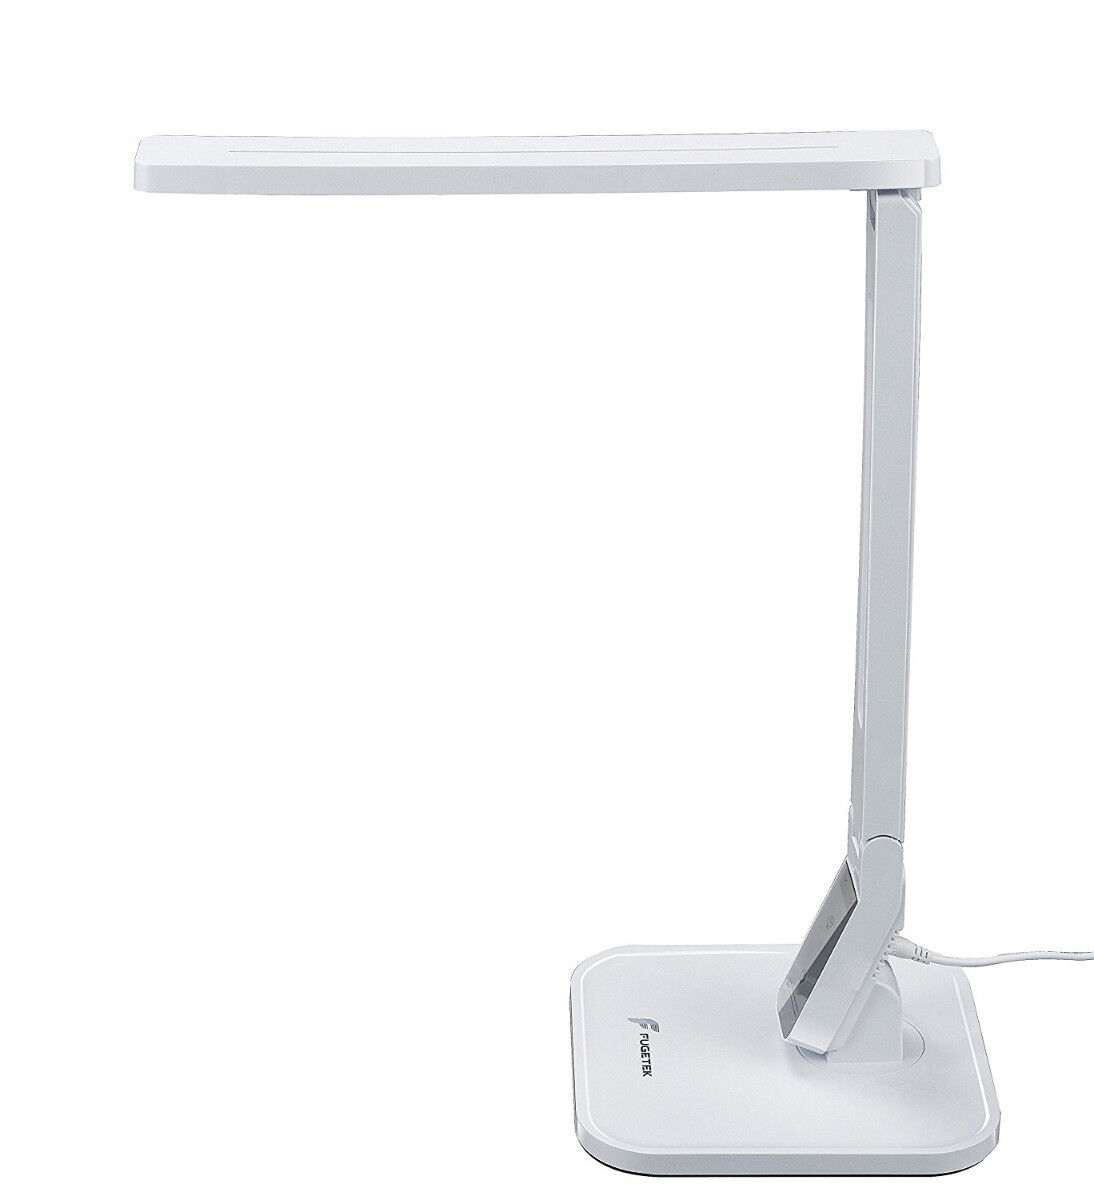 New LED Table Desk Lamp, 5-Level Brightness, Touch Control P